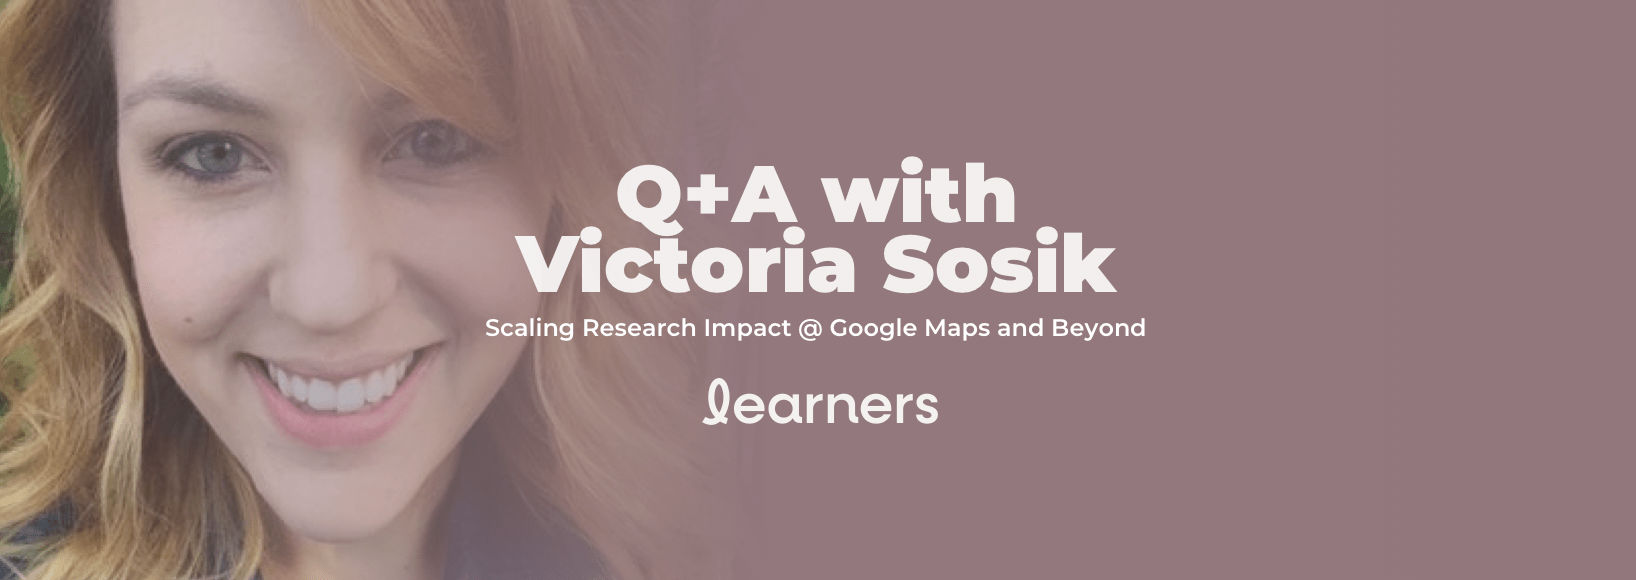 Q+A W/ Victoria Sosik | Scaling Research Impact @ Google Maps and Beyond